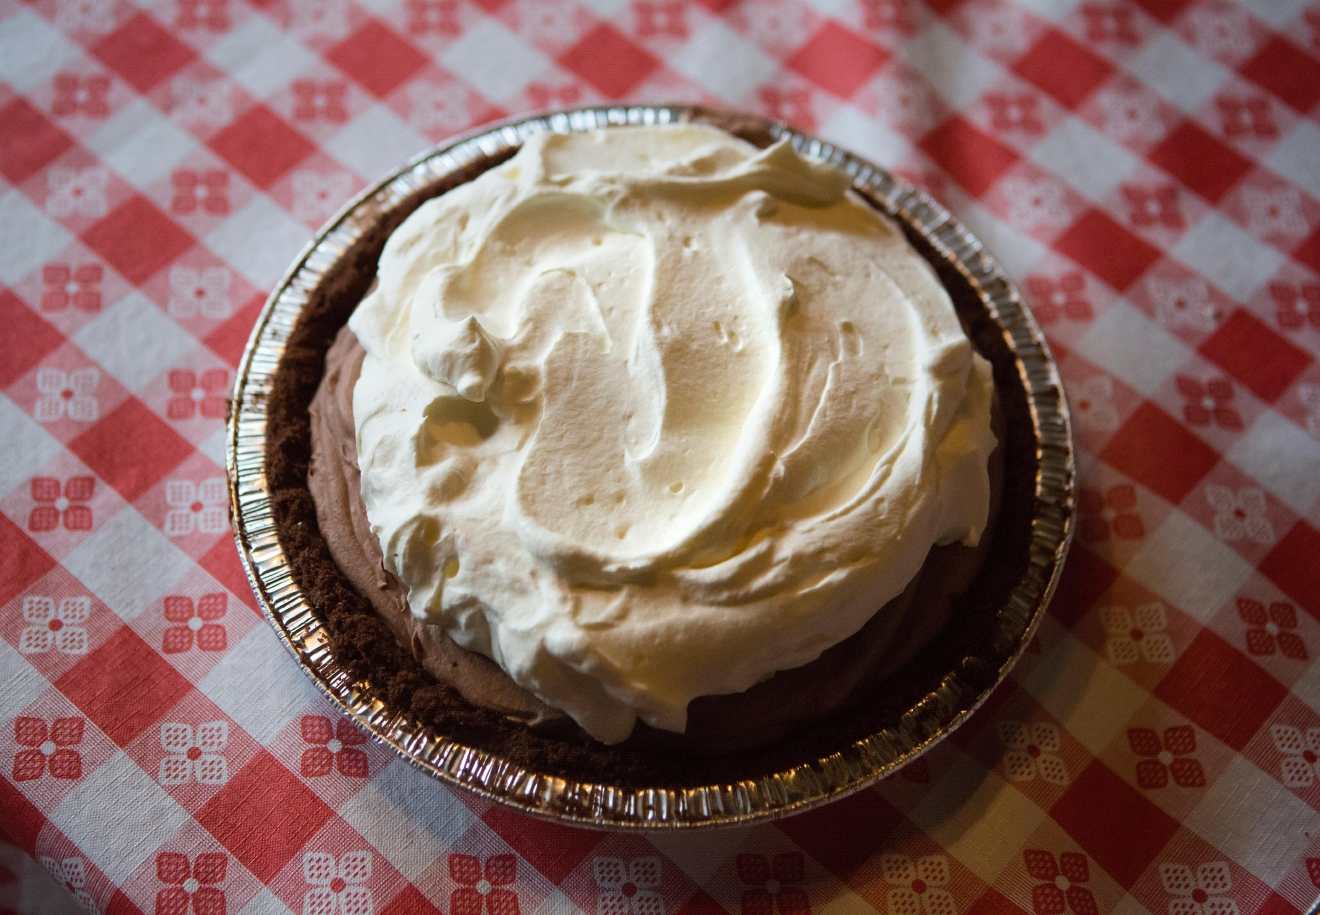 A chocolate pie from A la Mode Pies waits to be devoured before the second annual Pi Day Pie Eating Contest at Lost Lake Cafe. The winner of the competition got to choose a charity of their choice to receive $500. (Sy Bean / Seattle Refined)